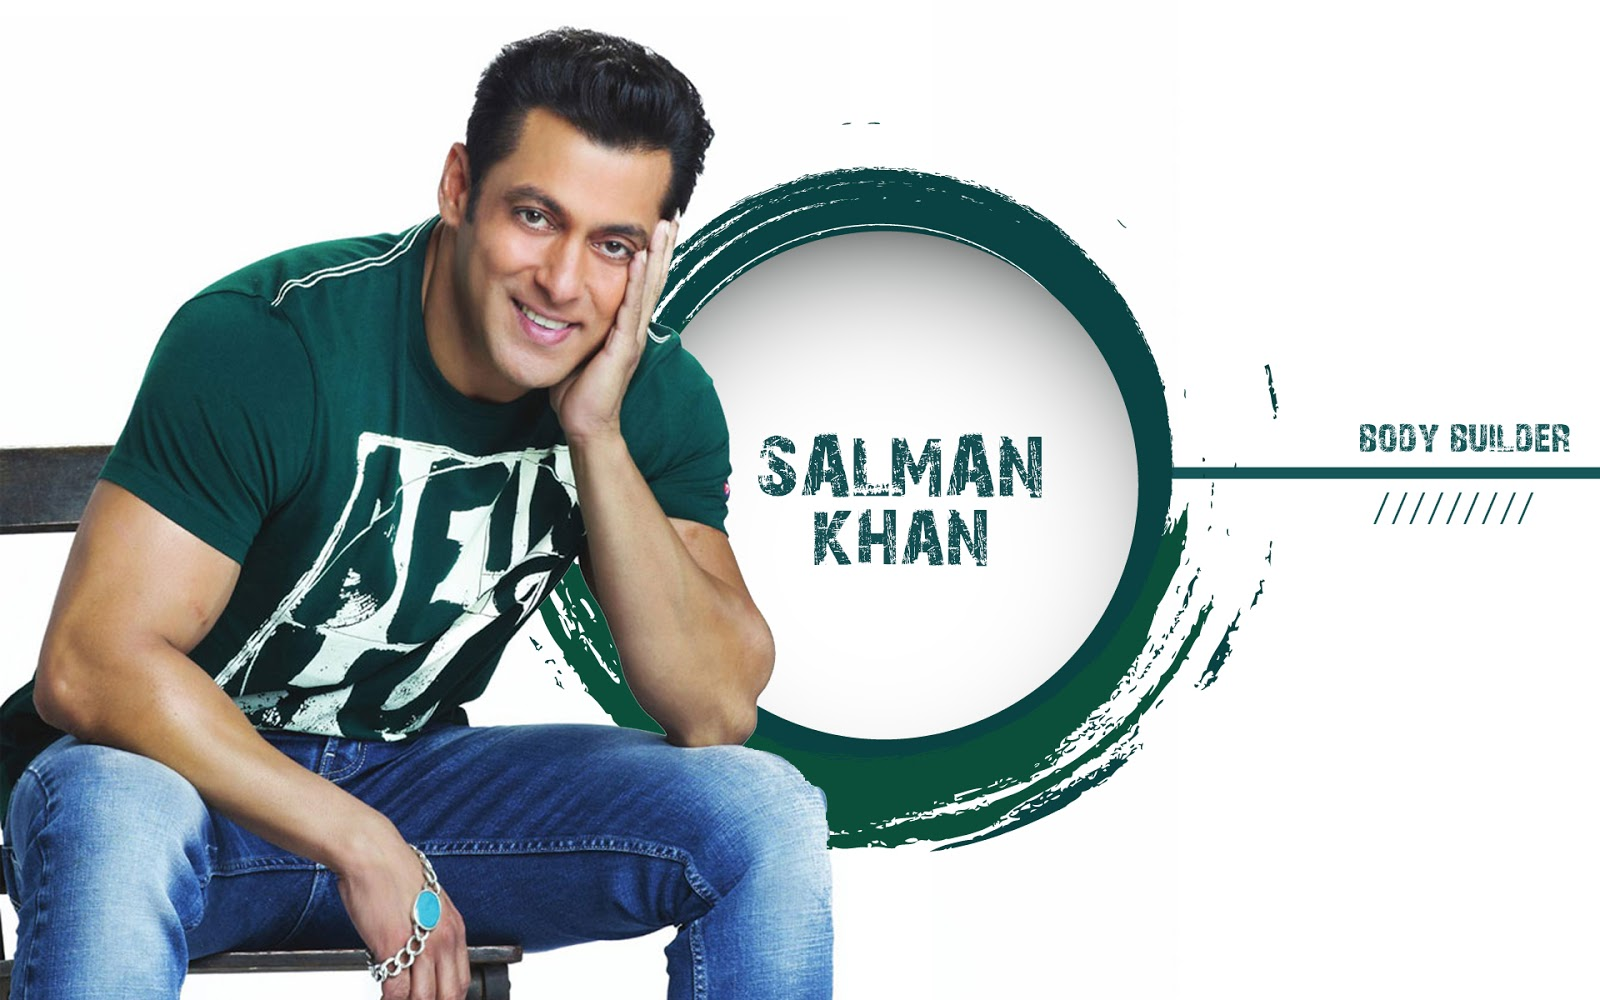 Hd Wallpapers Salman Khan Hd Wallpapers Images Pictures Photos 2015